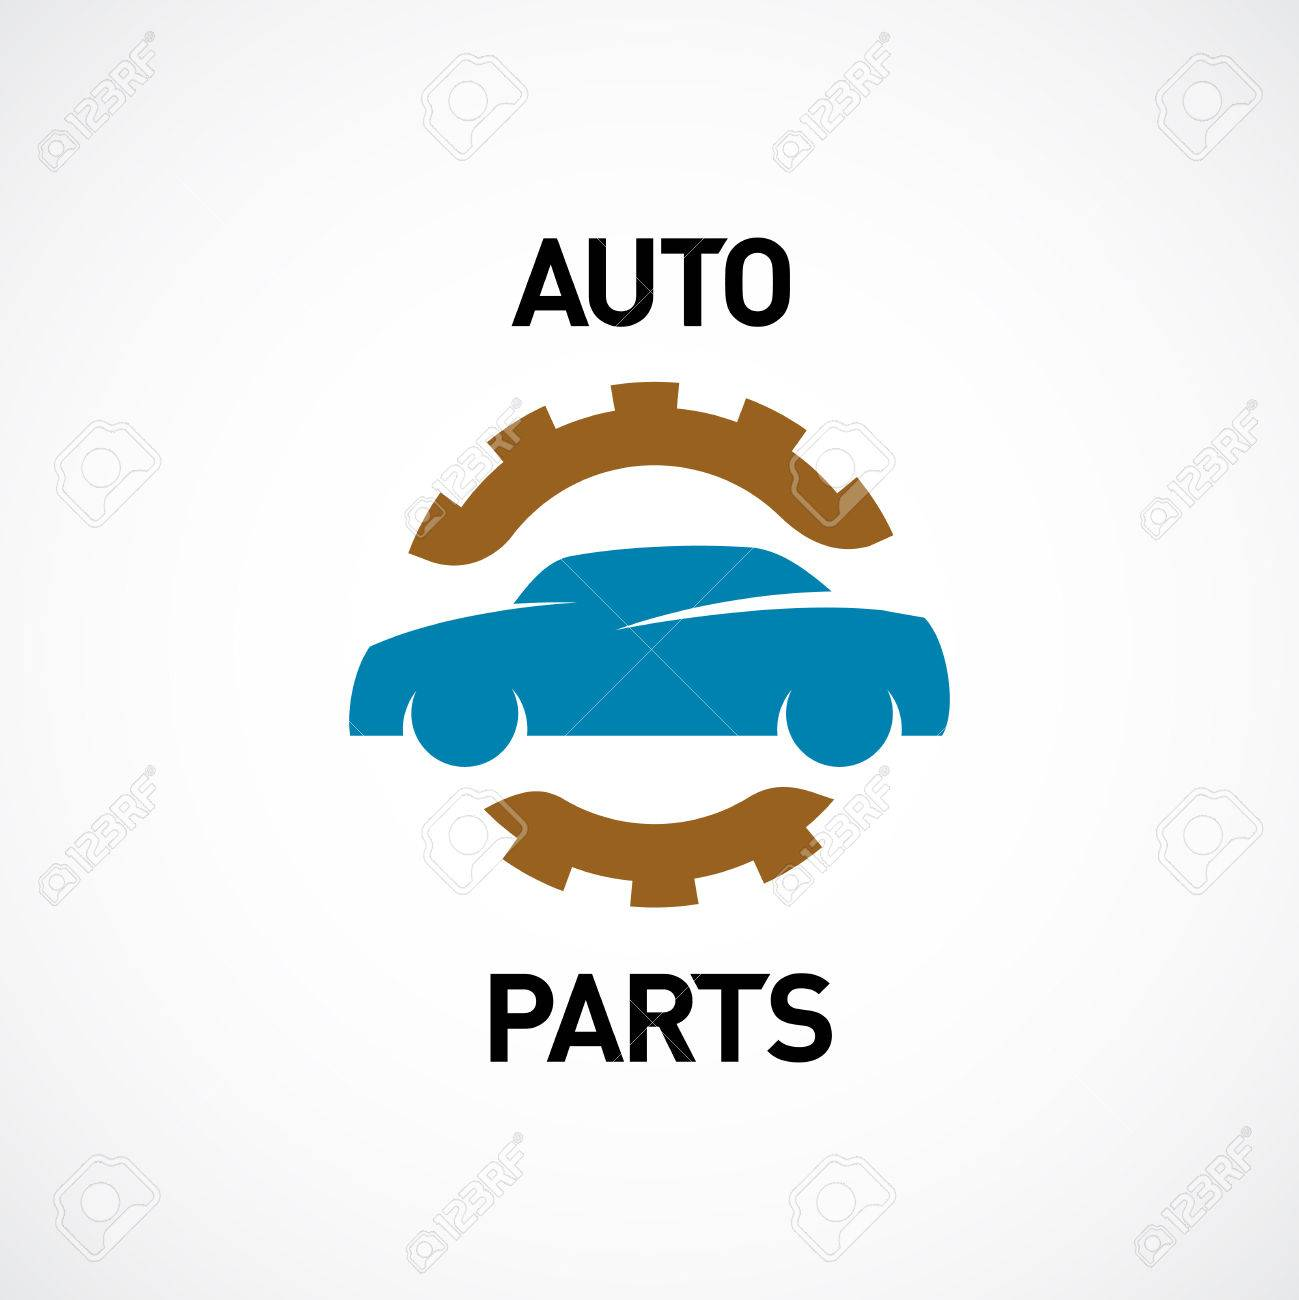 Auto Parts Logo Template. Car Silhouette With Gear Sign. Royalty ...